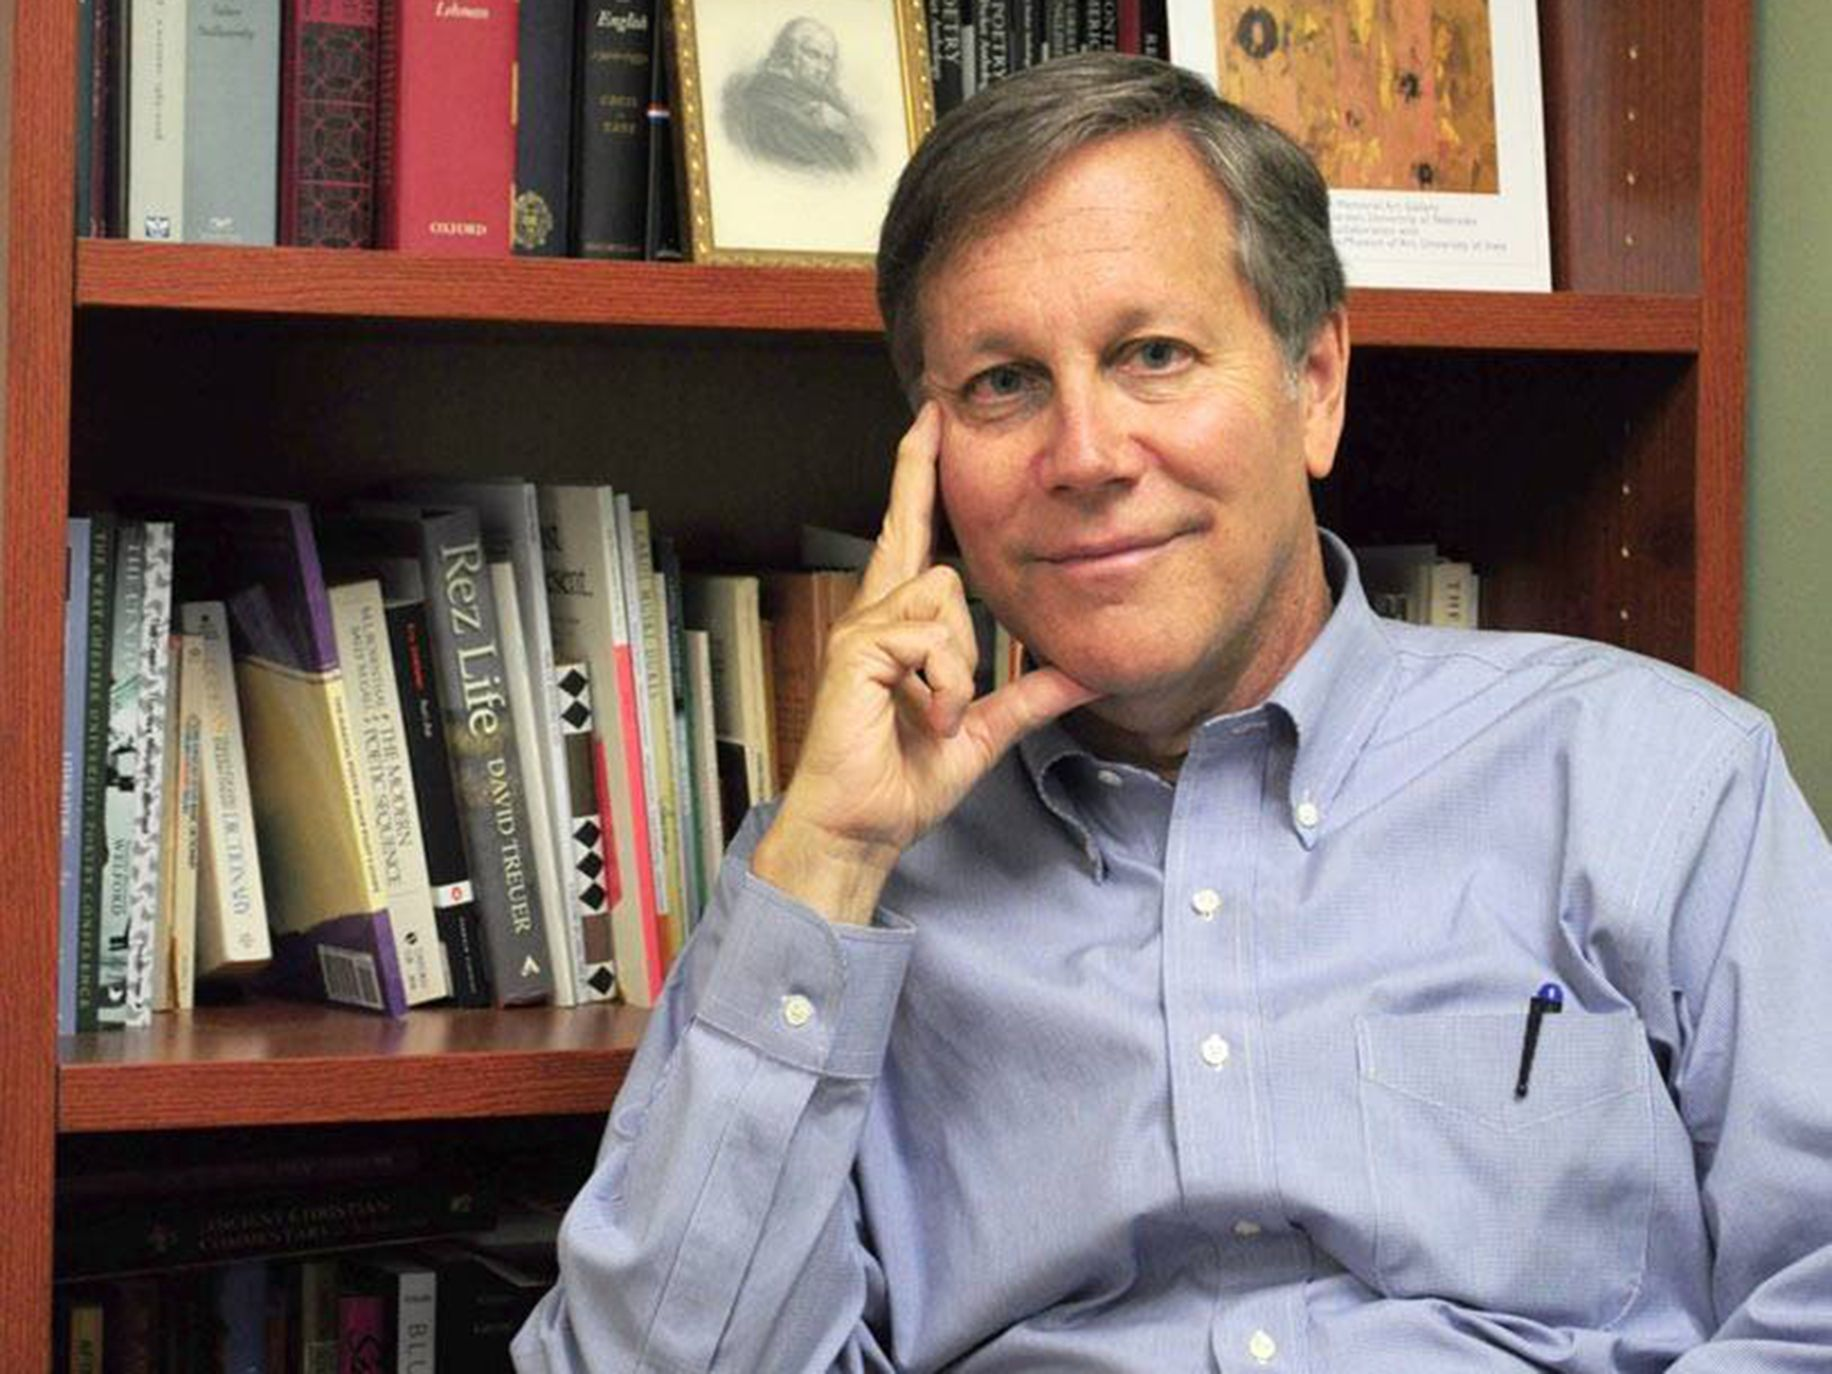 This is a photo of Dana Gioia was appointed California's Poet Laureate by Gov. Jerry Brown in 2015.